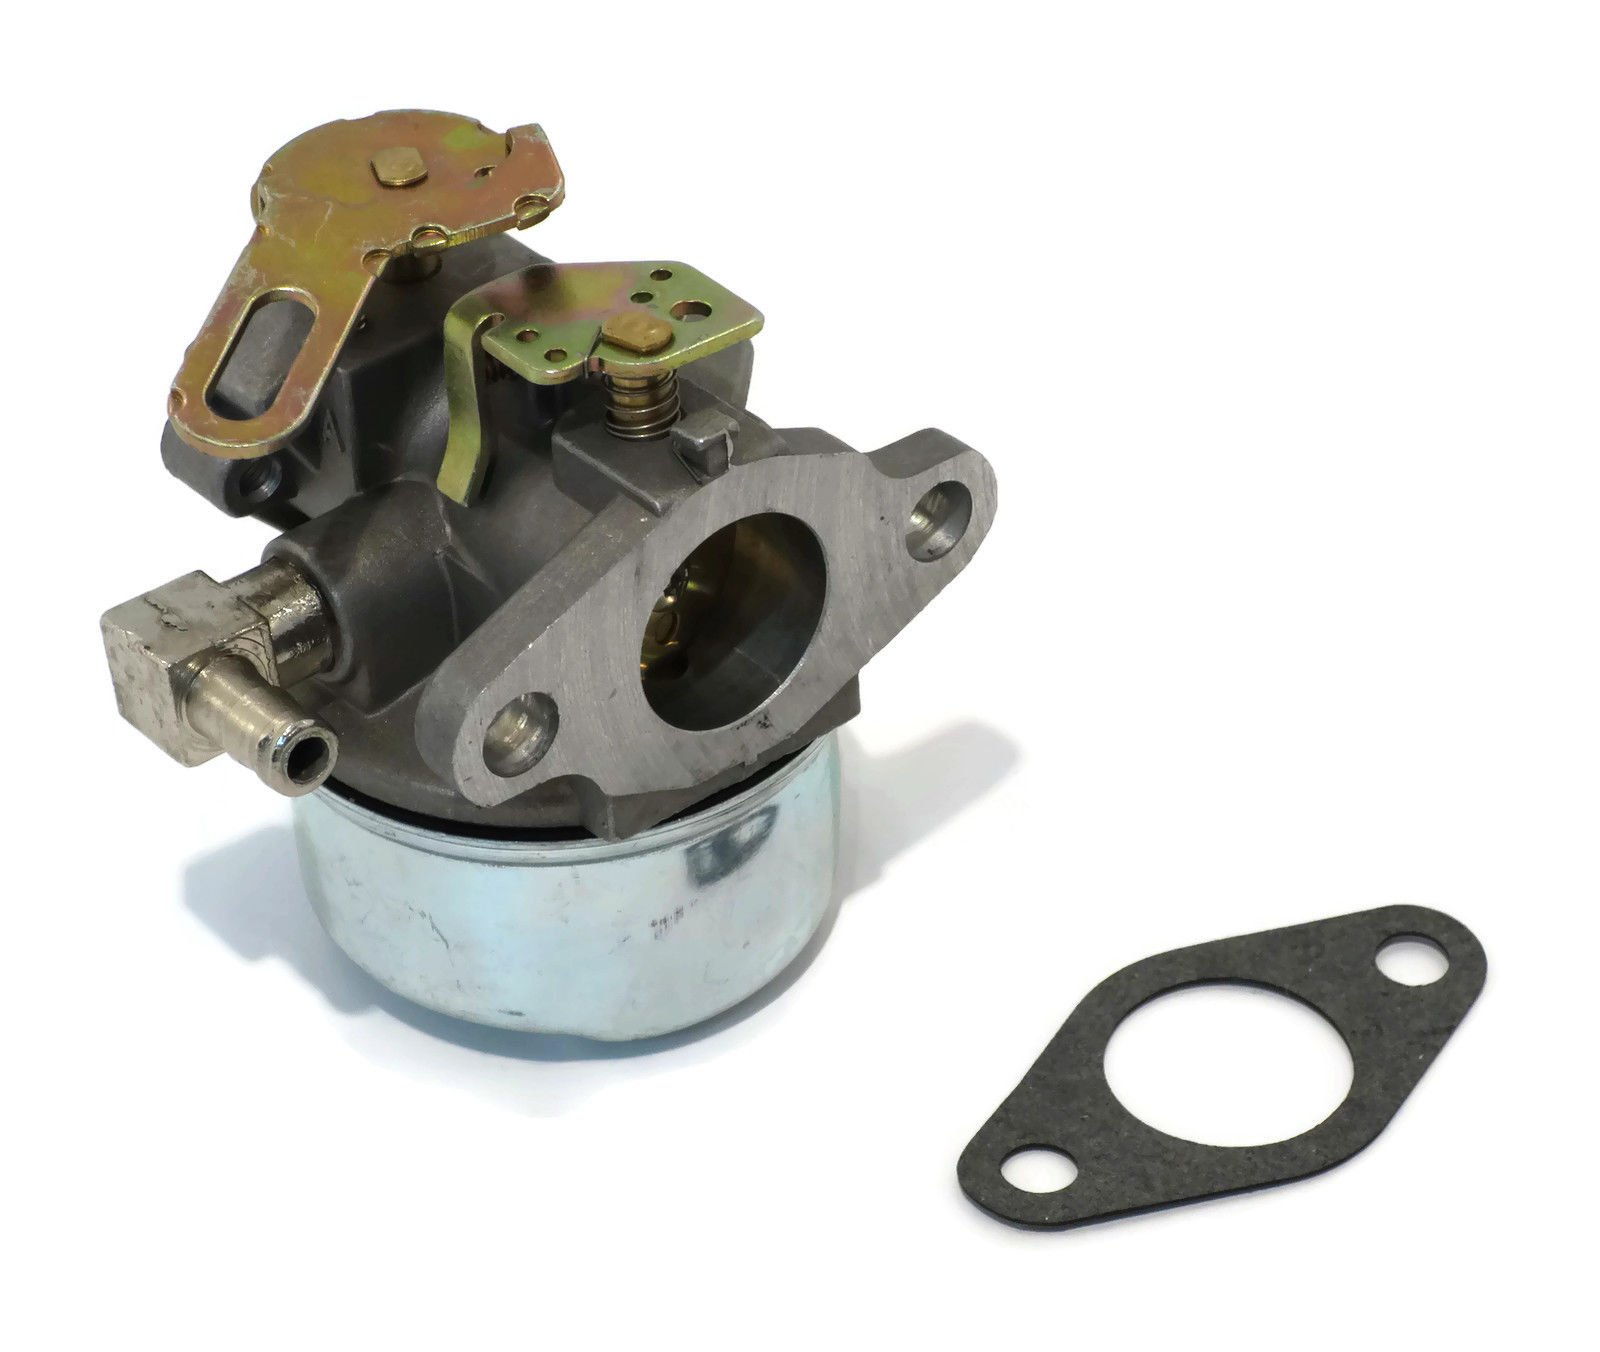 The ROP Shop Carburetor Carb for Many Troy Bilt Toro 4, 5, 5.5 HP Tecumseh Engine Snowblowers by The ROP Shop